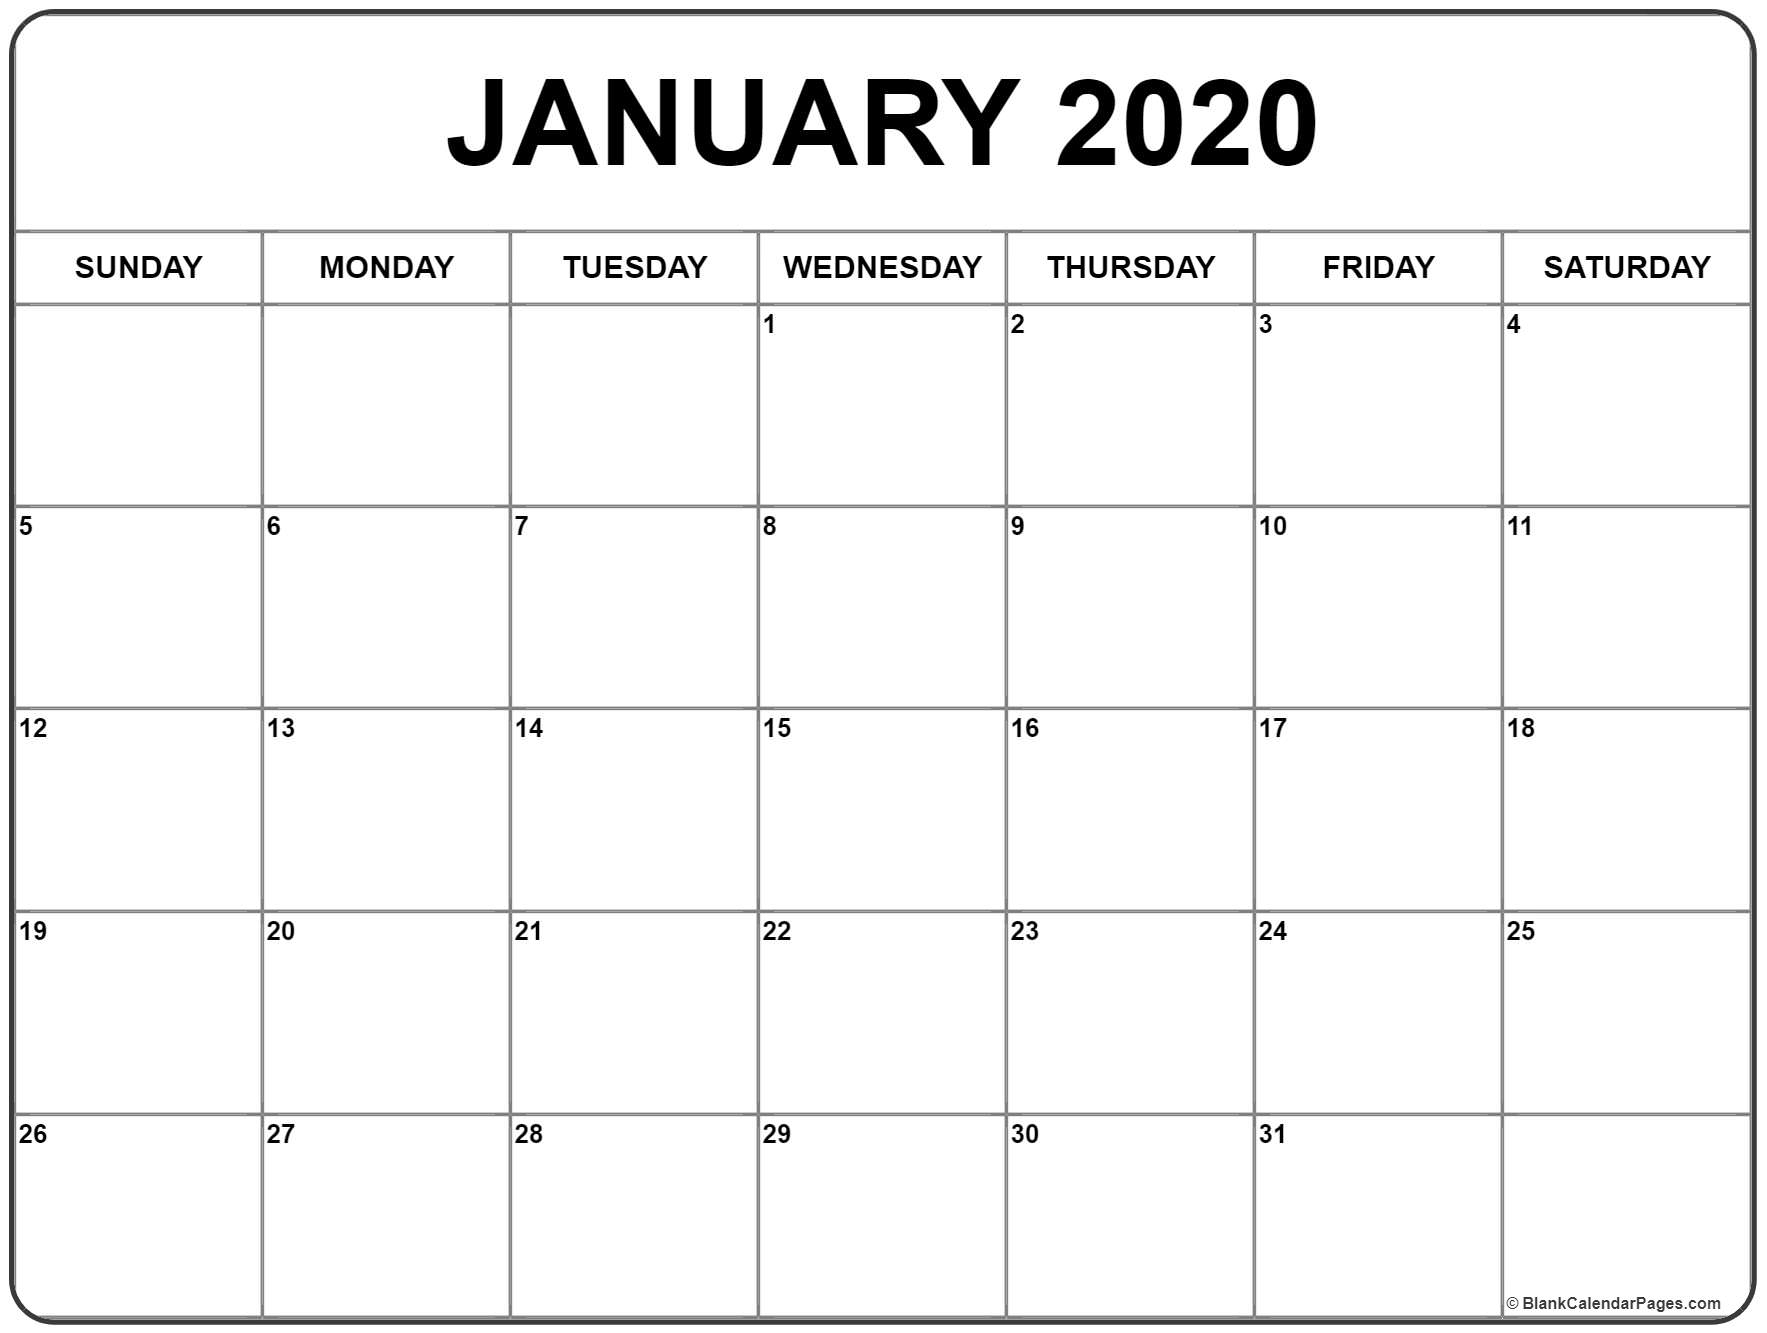 Printable January 2020 Calendar - Free Blank Templates-January 2020 Us Calendar